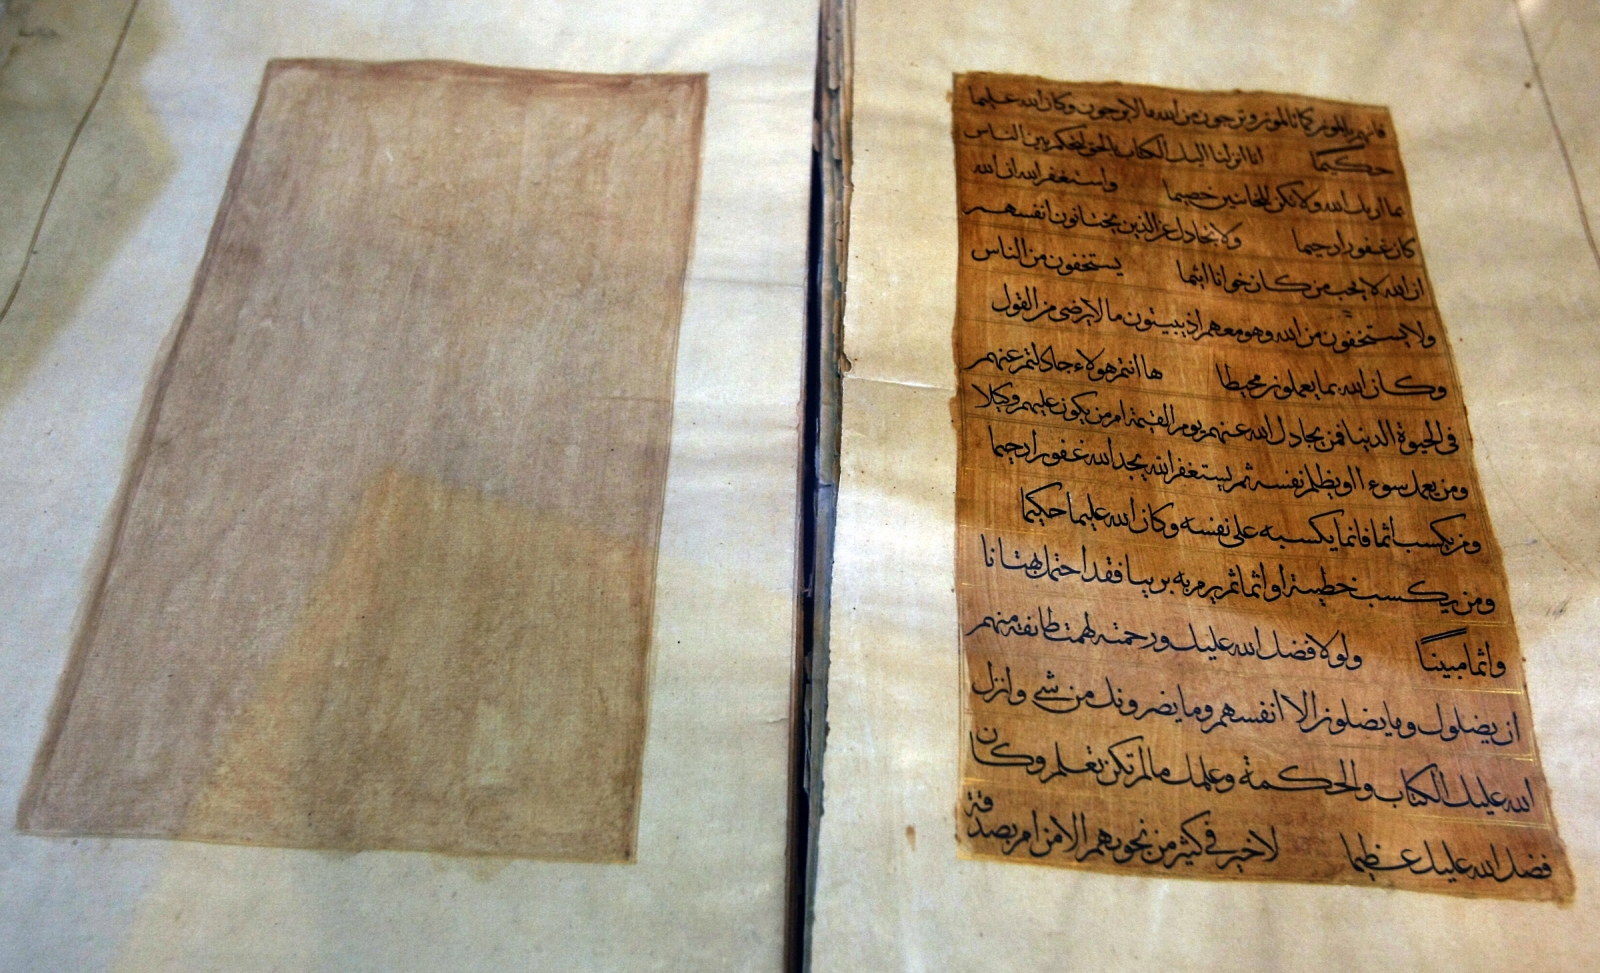 Isis manuscripts burned Iraq